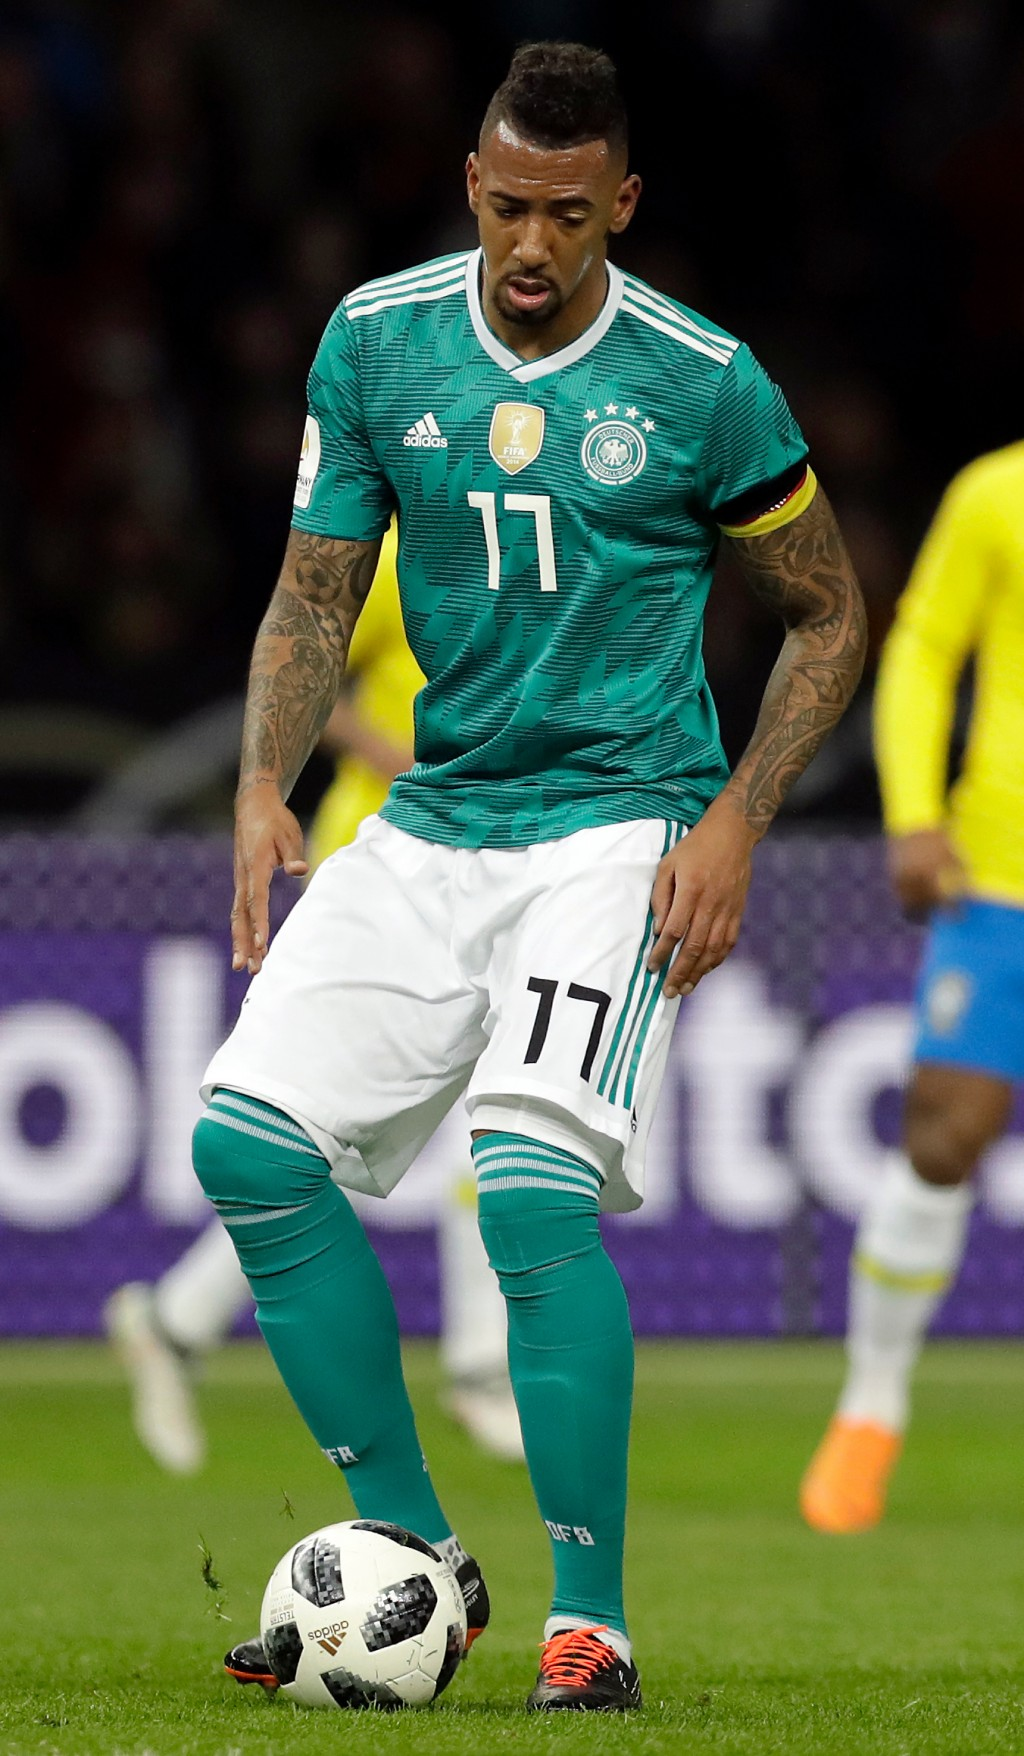 In this photo taken on Tuesday, March 27, 2018, Germany's Jerome Boateng controls the ball during the international friendly soccer match between Germ...